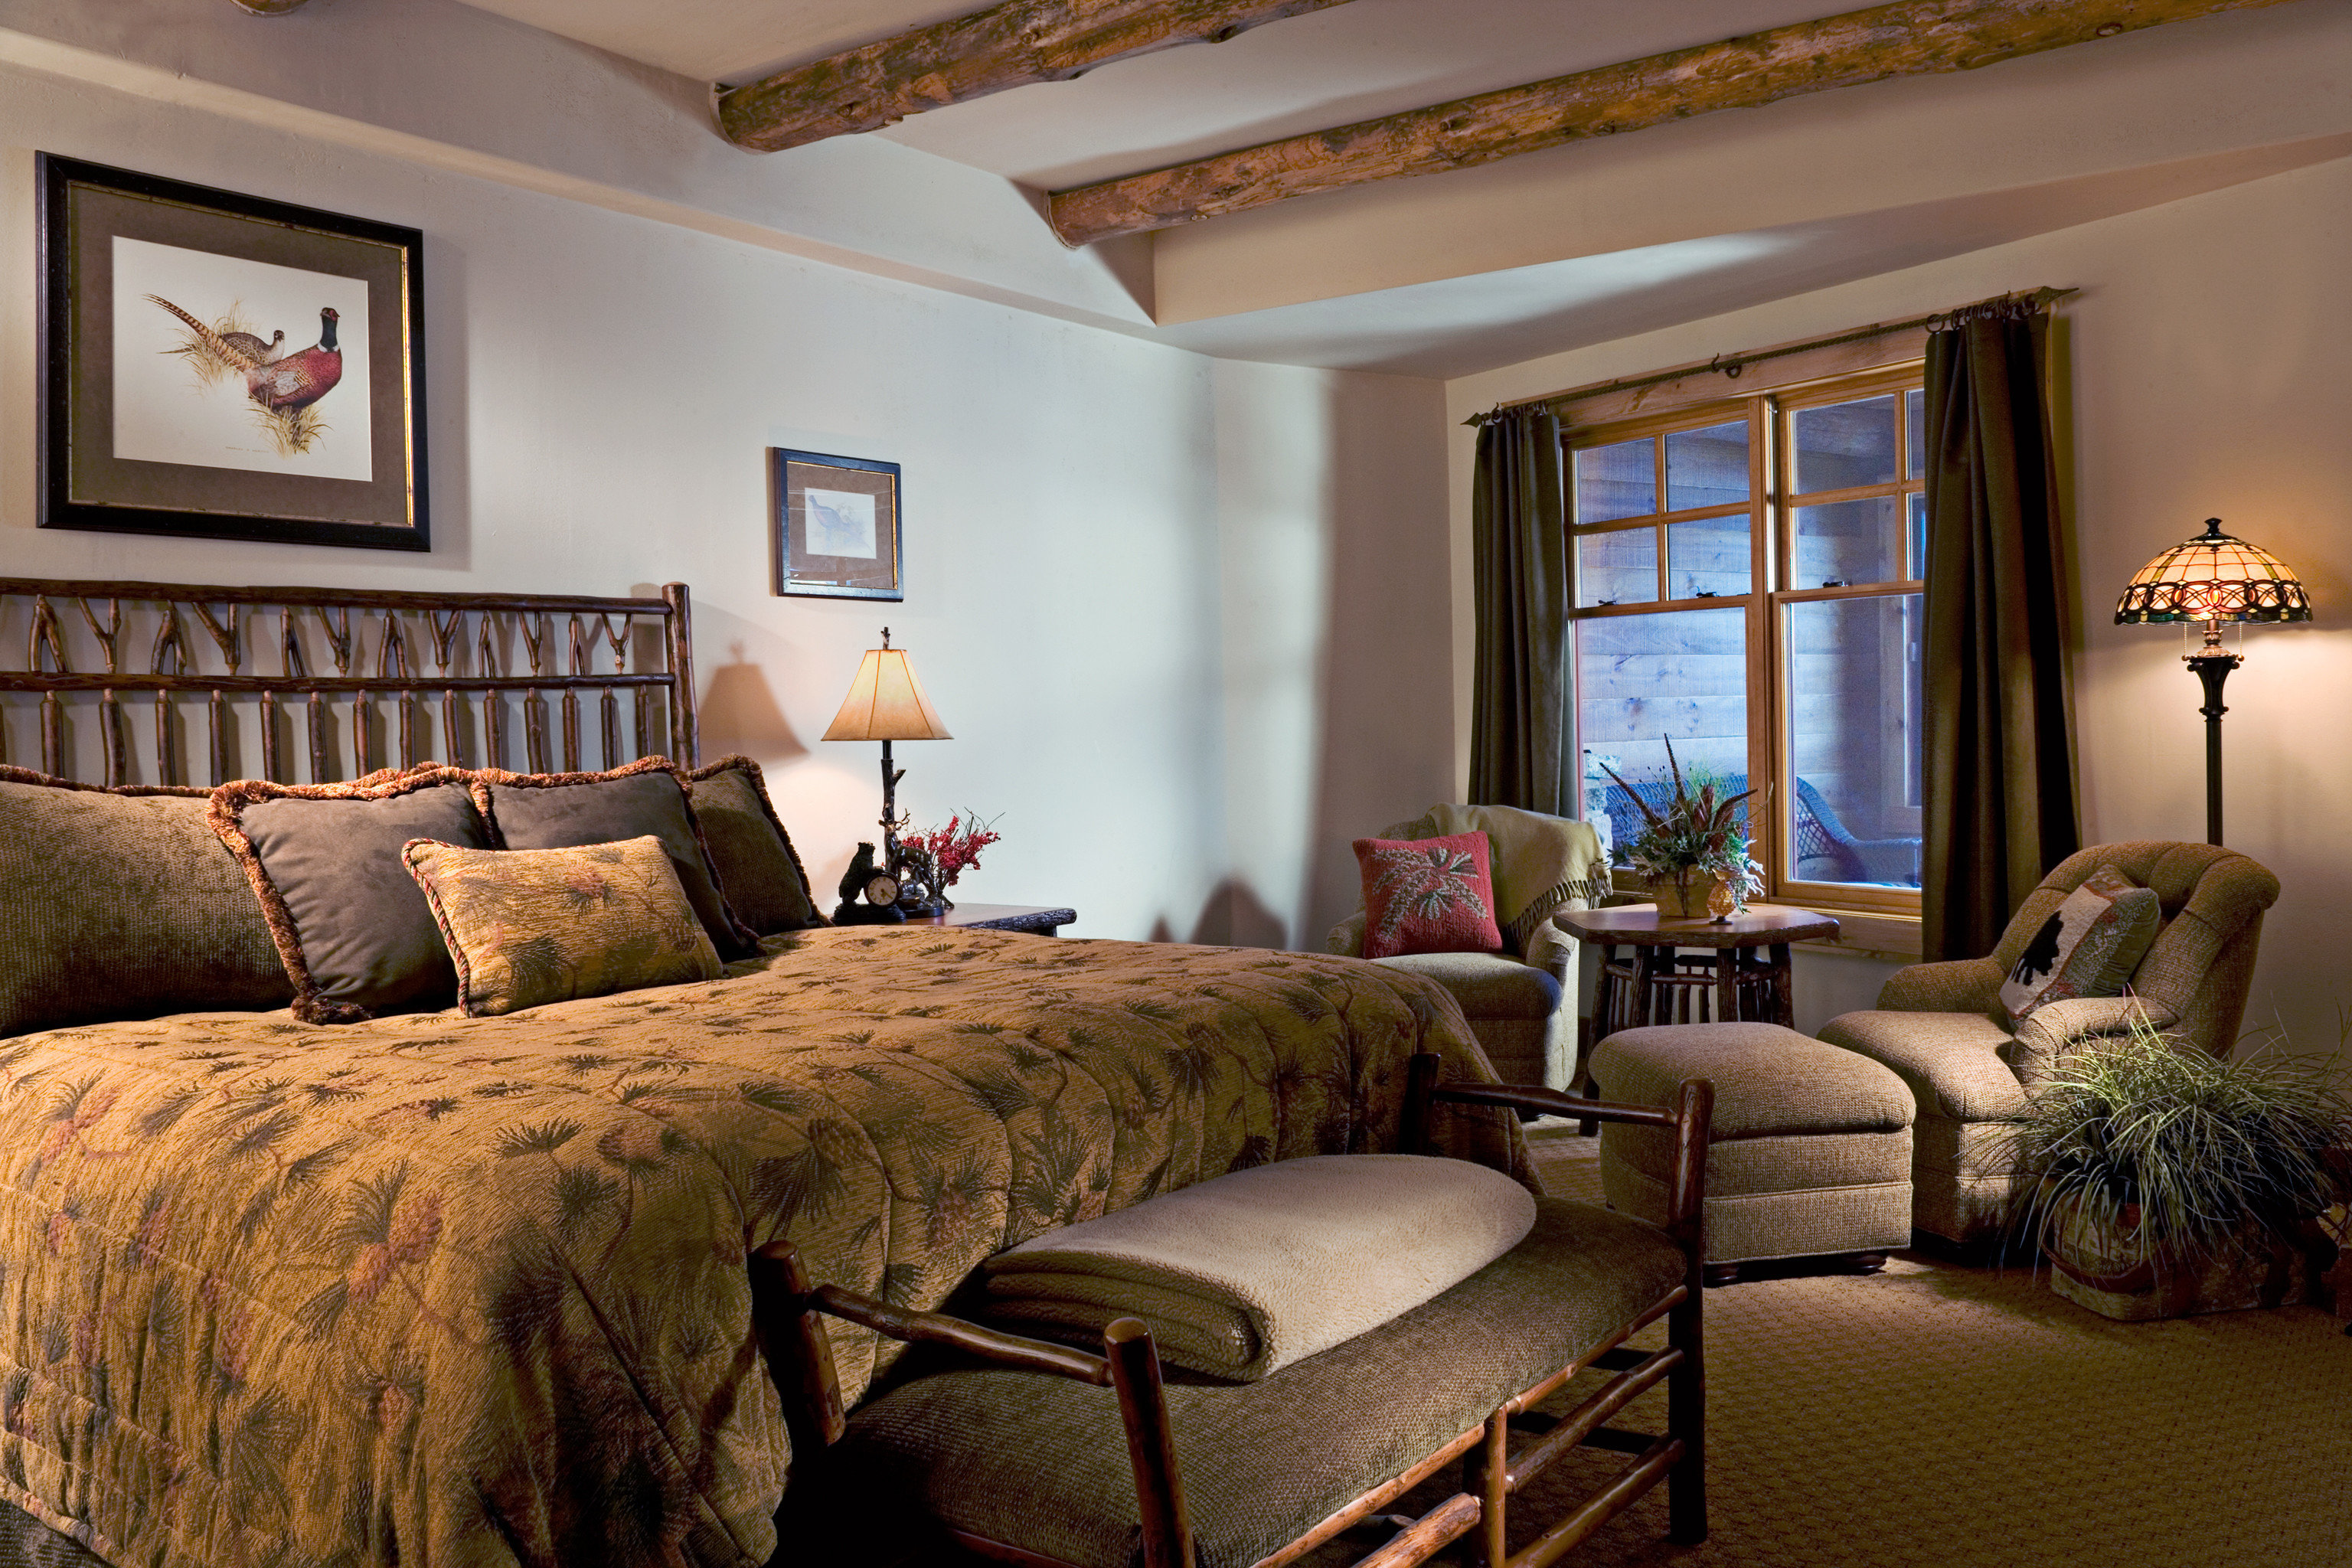 Bedroom Country Hotels Luxury New York Romantic Romantic Hotels Rustic Suite indoor wall sofa room floor ceiling window Living property estate living room home cottage interior design real estate hardwood decorated furniture farmhouse Villa